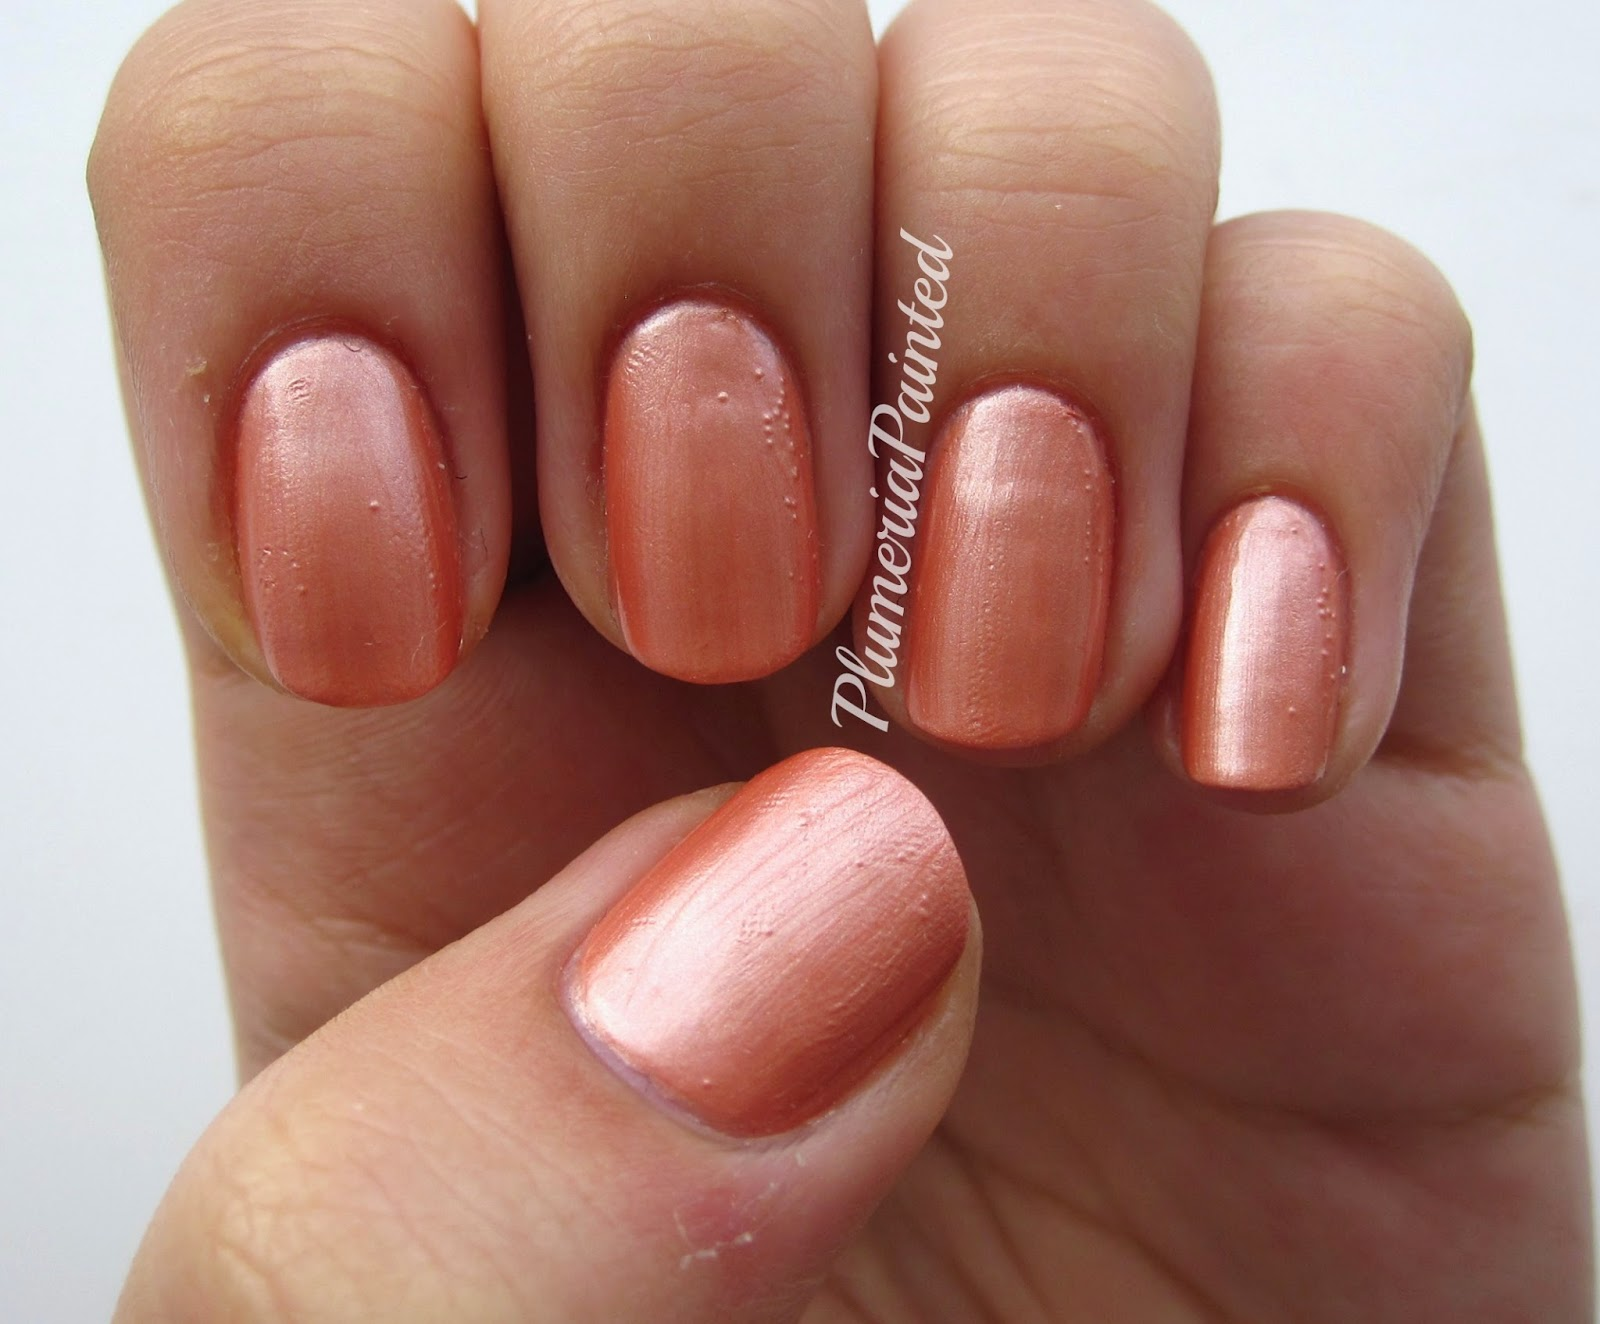 PlumeriaPainted: Peach Nails: Paris Collection - Brown Beaute